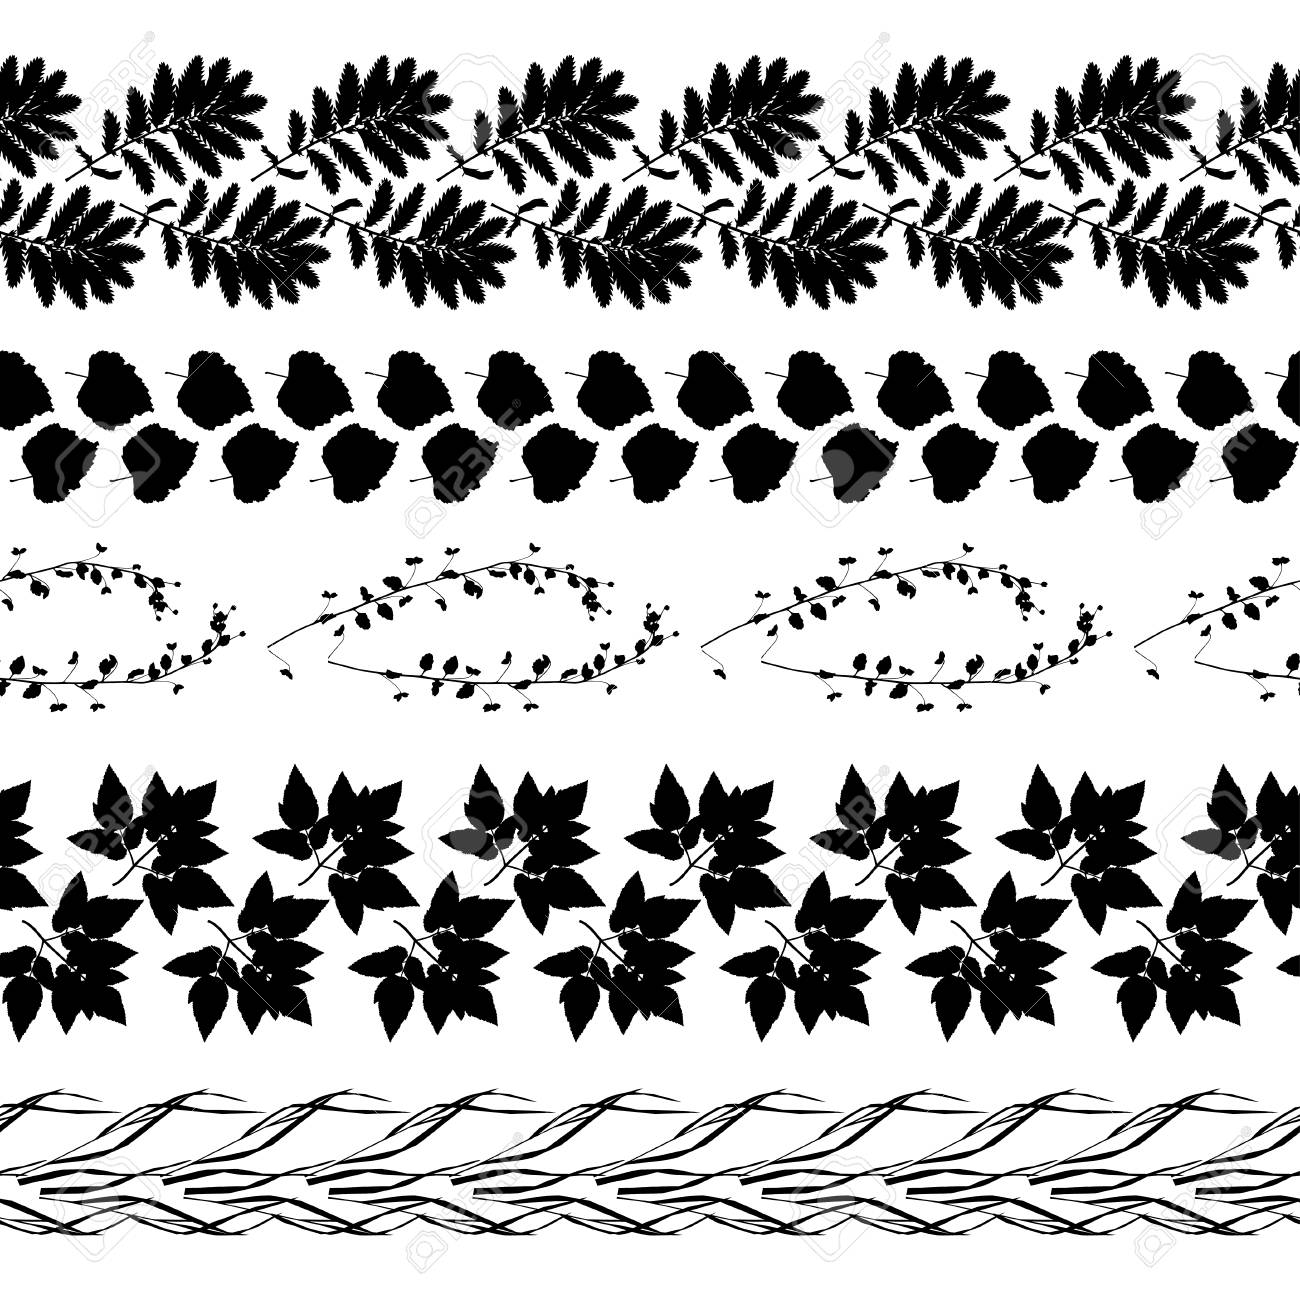 Black Leaves Seamless Border Vector Illustration For Your Design Royalty Free Cliparts Vectors And Stock Illustration Image 51124087